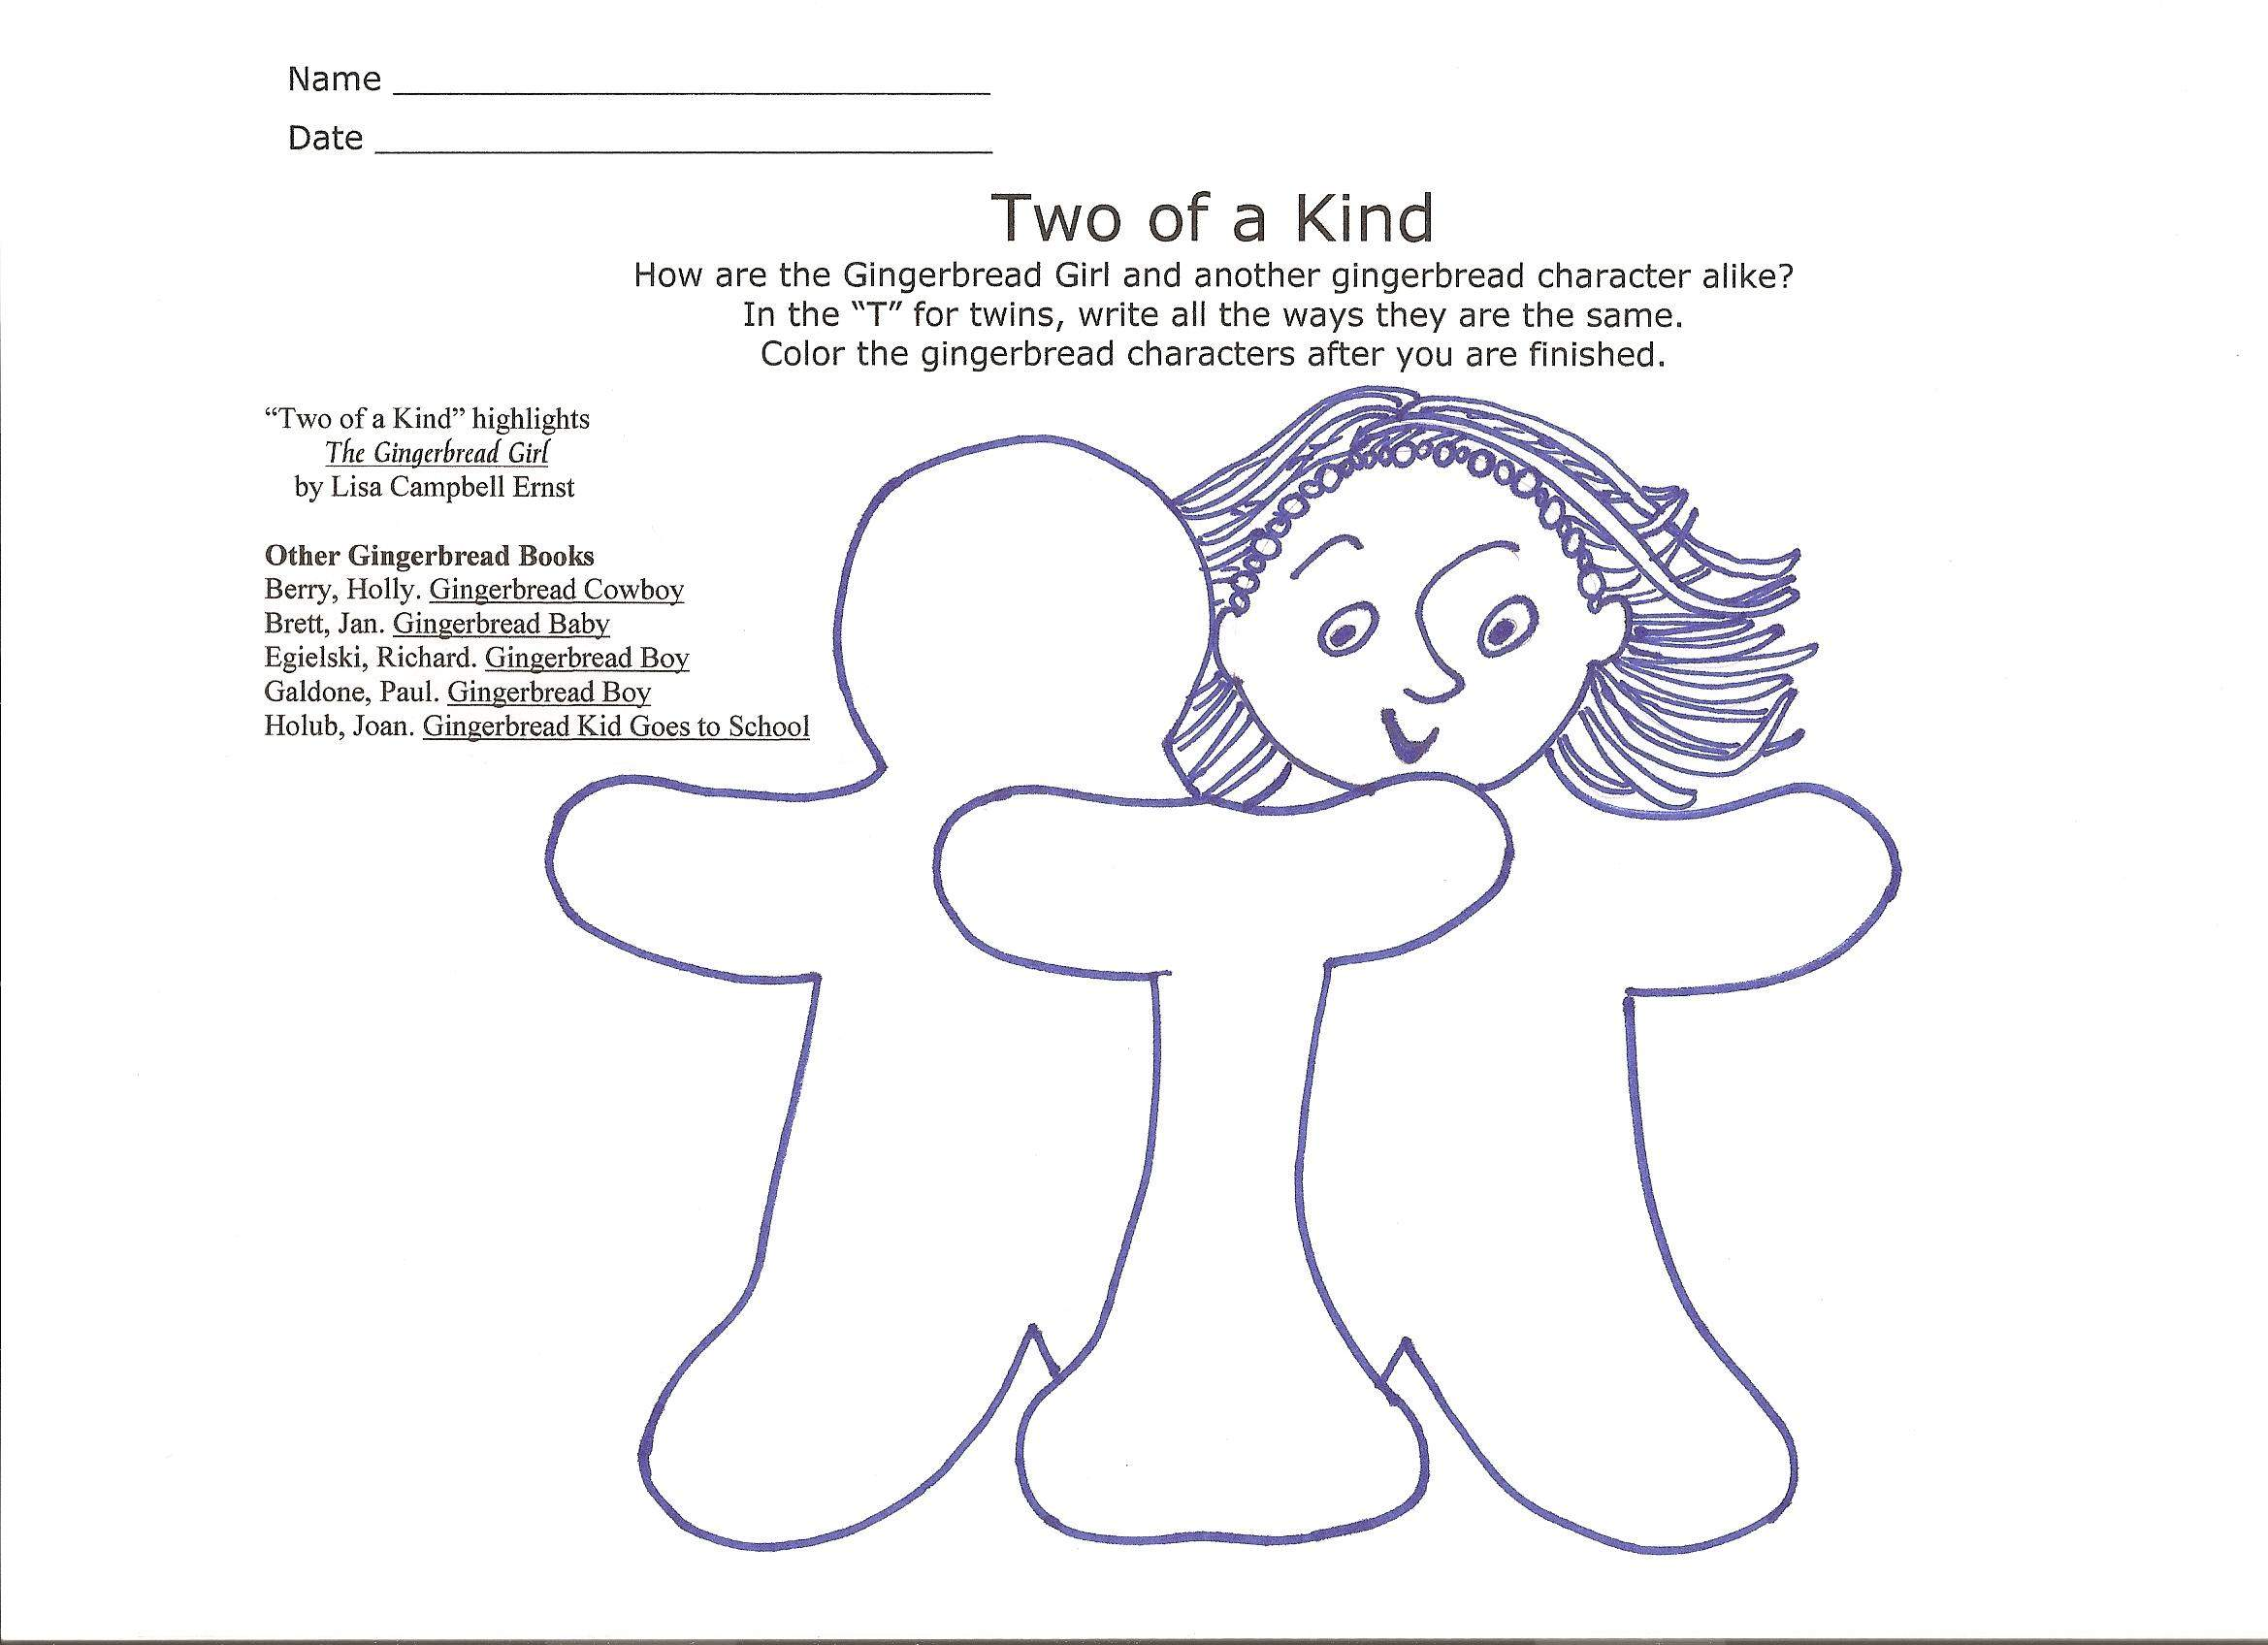 the gingerbread girl and the gingerbread boy compare and contrast the ...